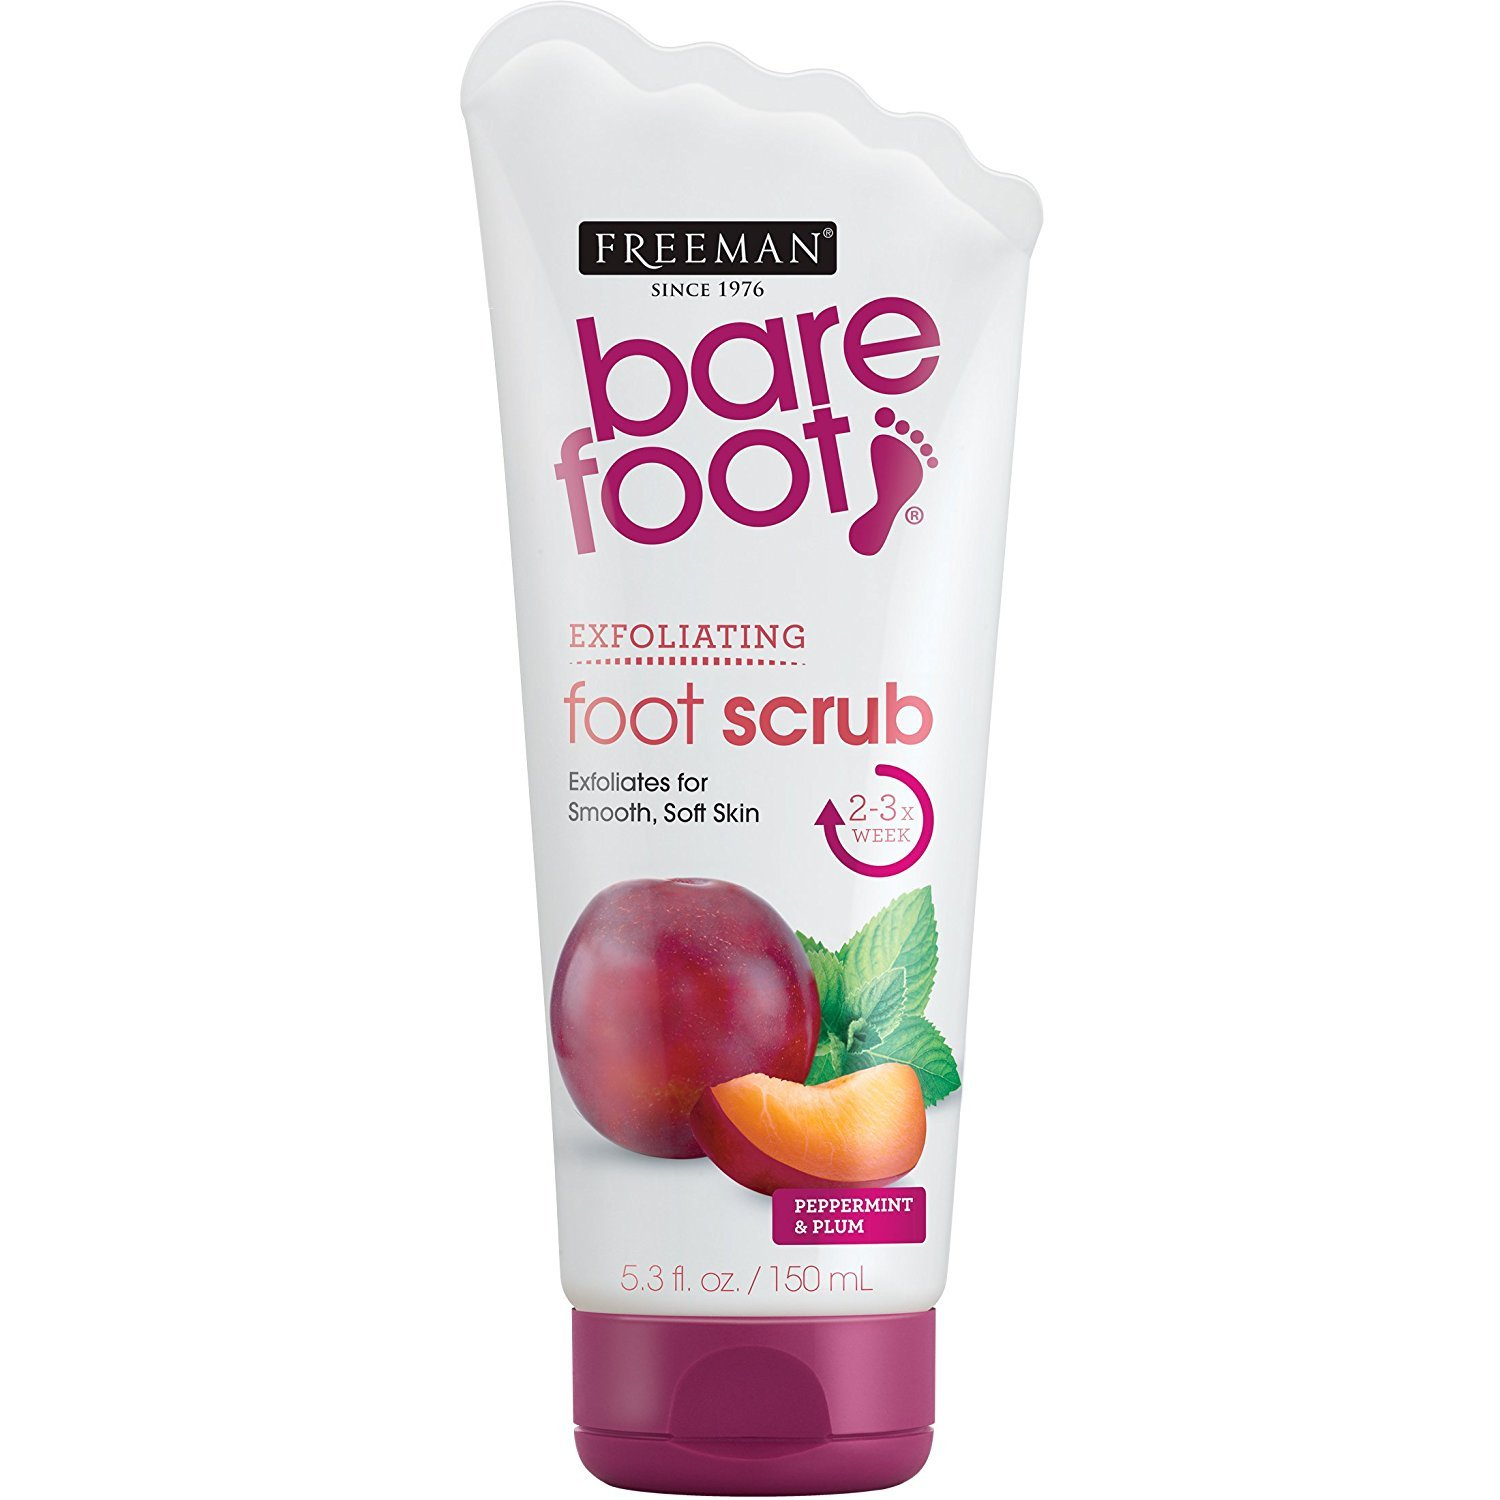 Freeman Bare Foot Exfoliating foot scrub Peppermint and Plum 5.3 oz 0072151187602